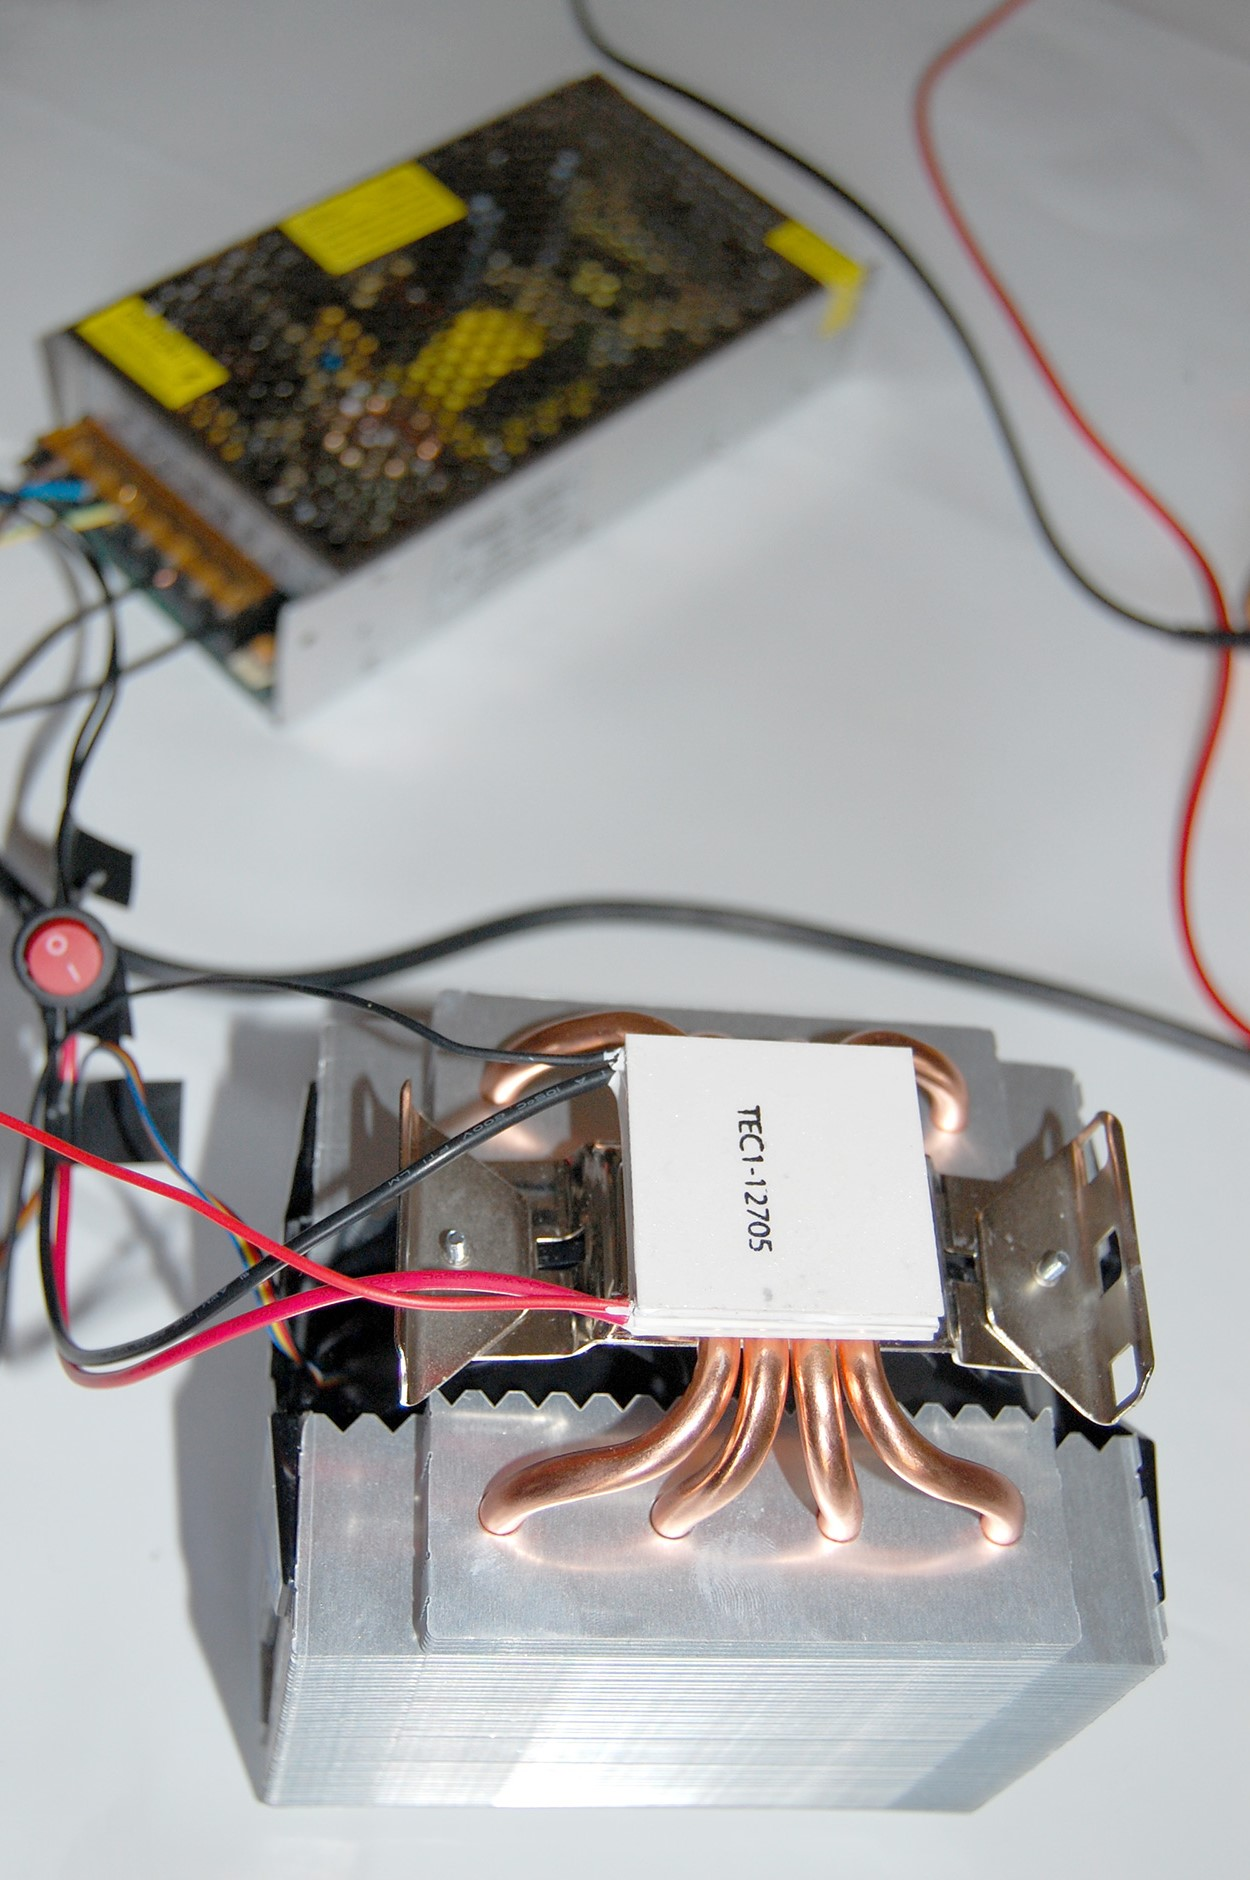 using a Heatsink to cool a Peltier Element